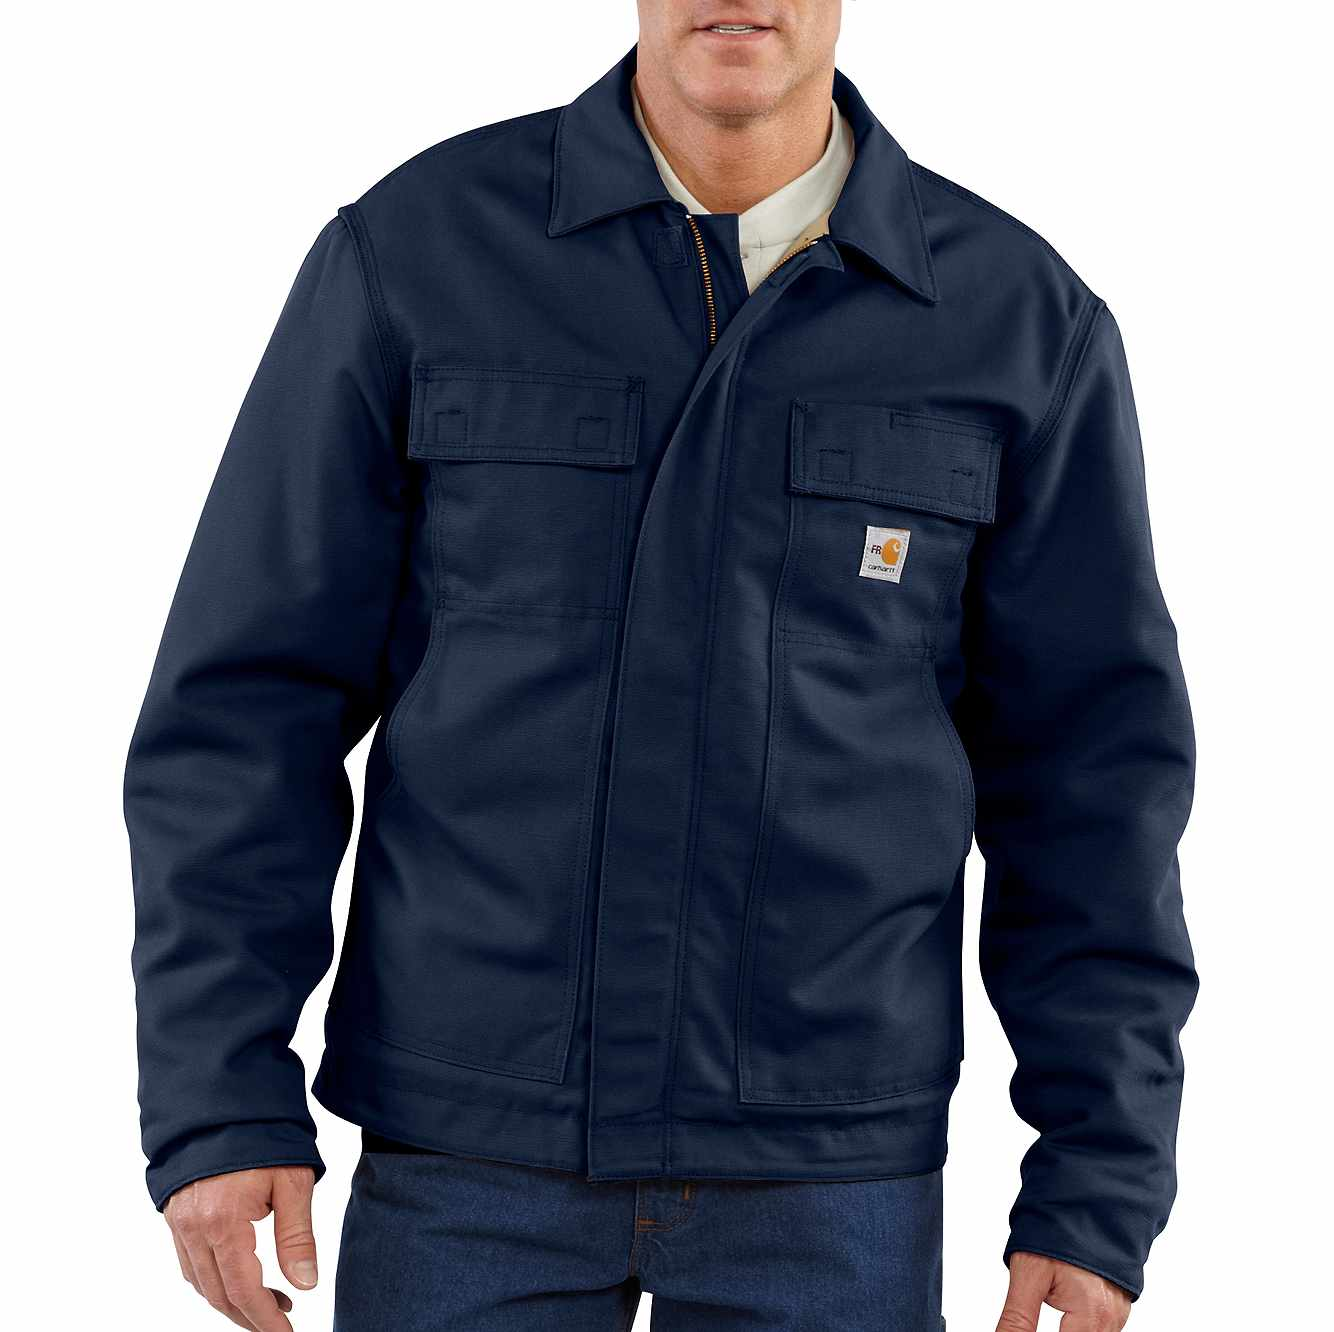 Picture of Flame-Resistant Lanyard Access Jacket/Quilt-Lined in Dark Navy